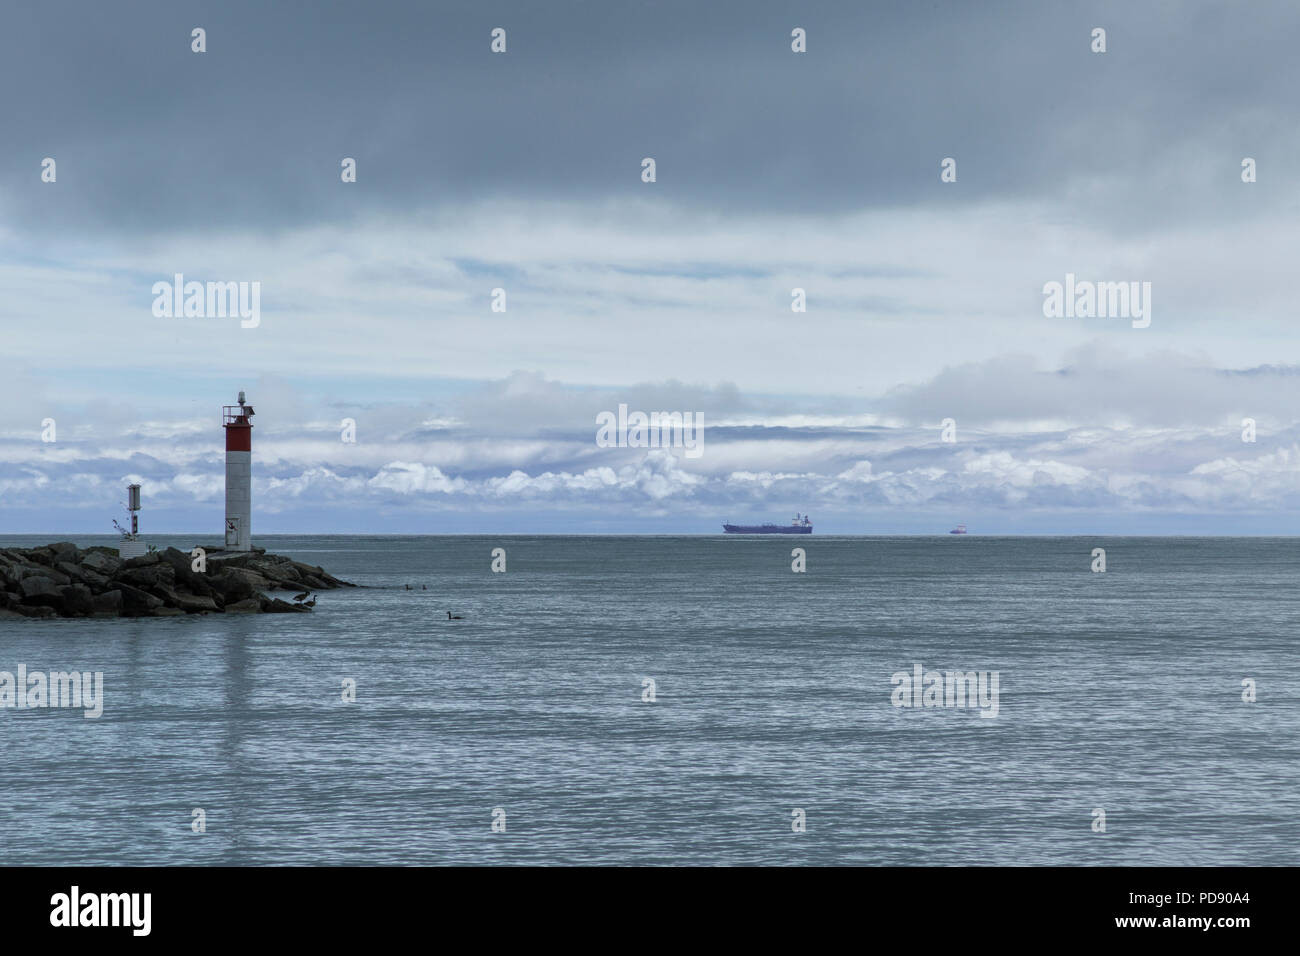 Port Dover Ontario Canada. Harbor and freighters on Lake Erie - Stock Image